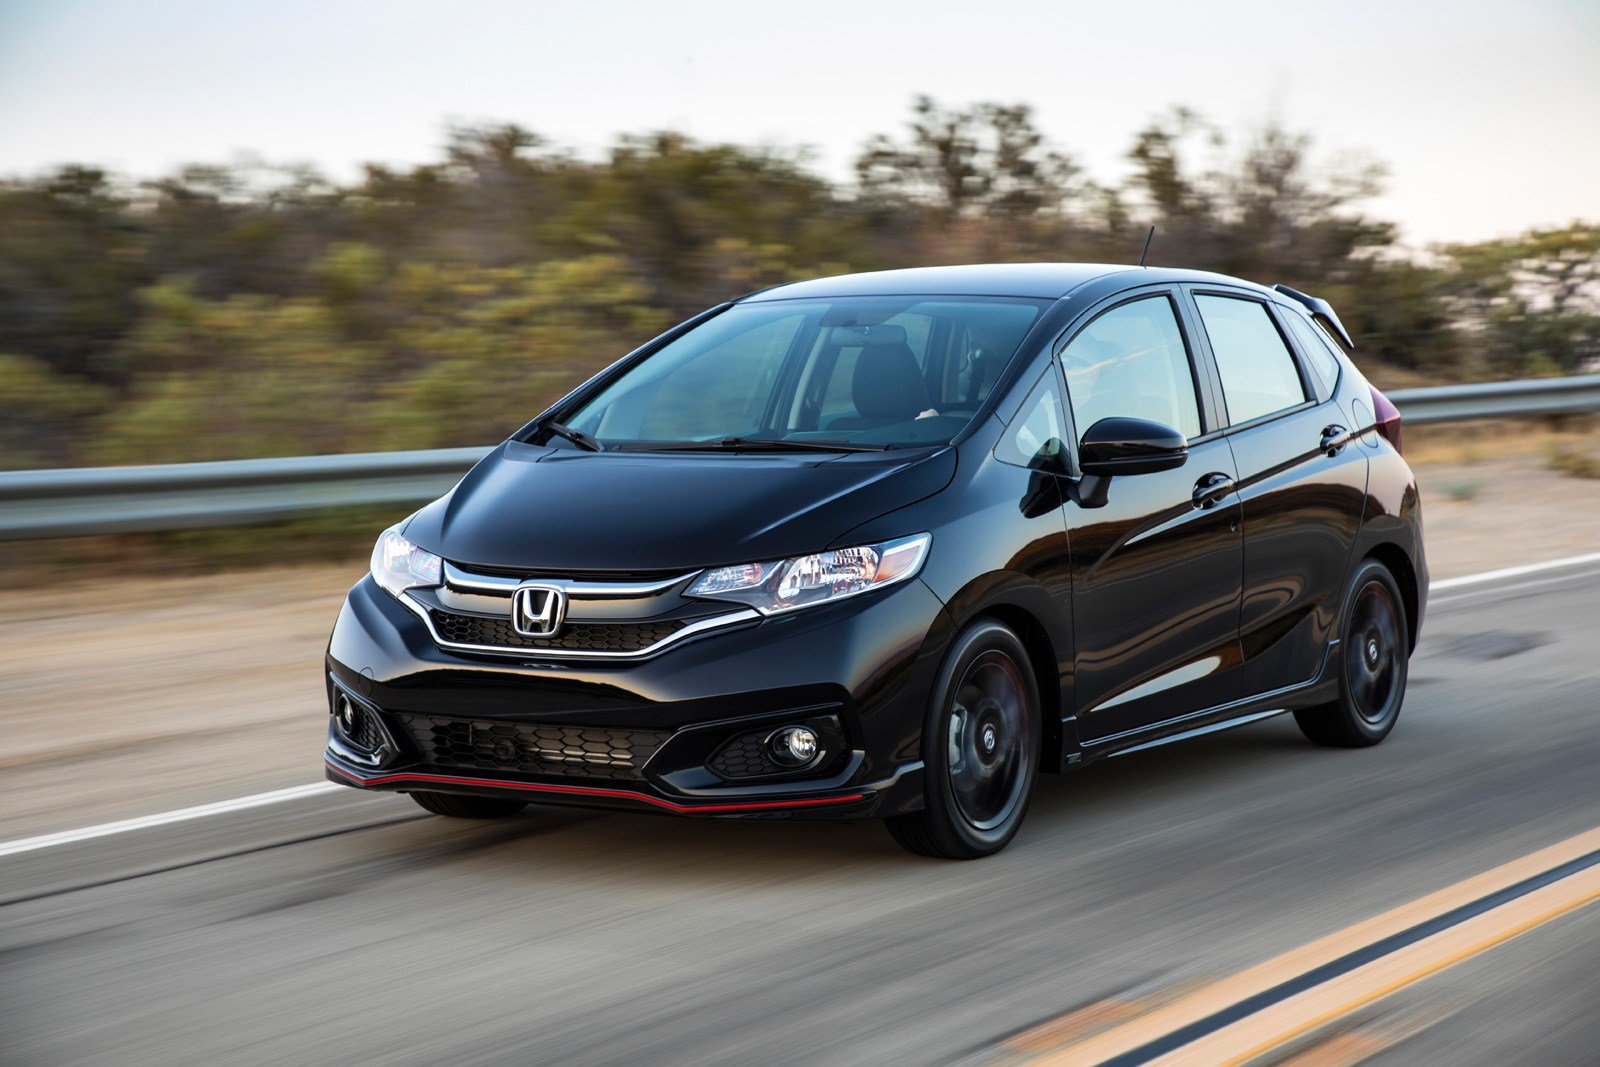 vs in buy htm financing lease honda want buying us a durham to crown nc southpoint today or contact